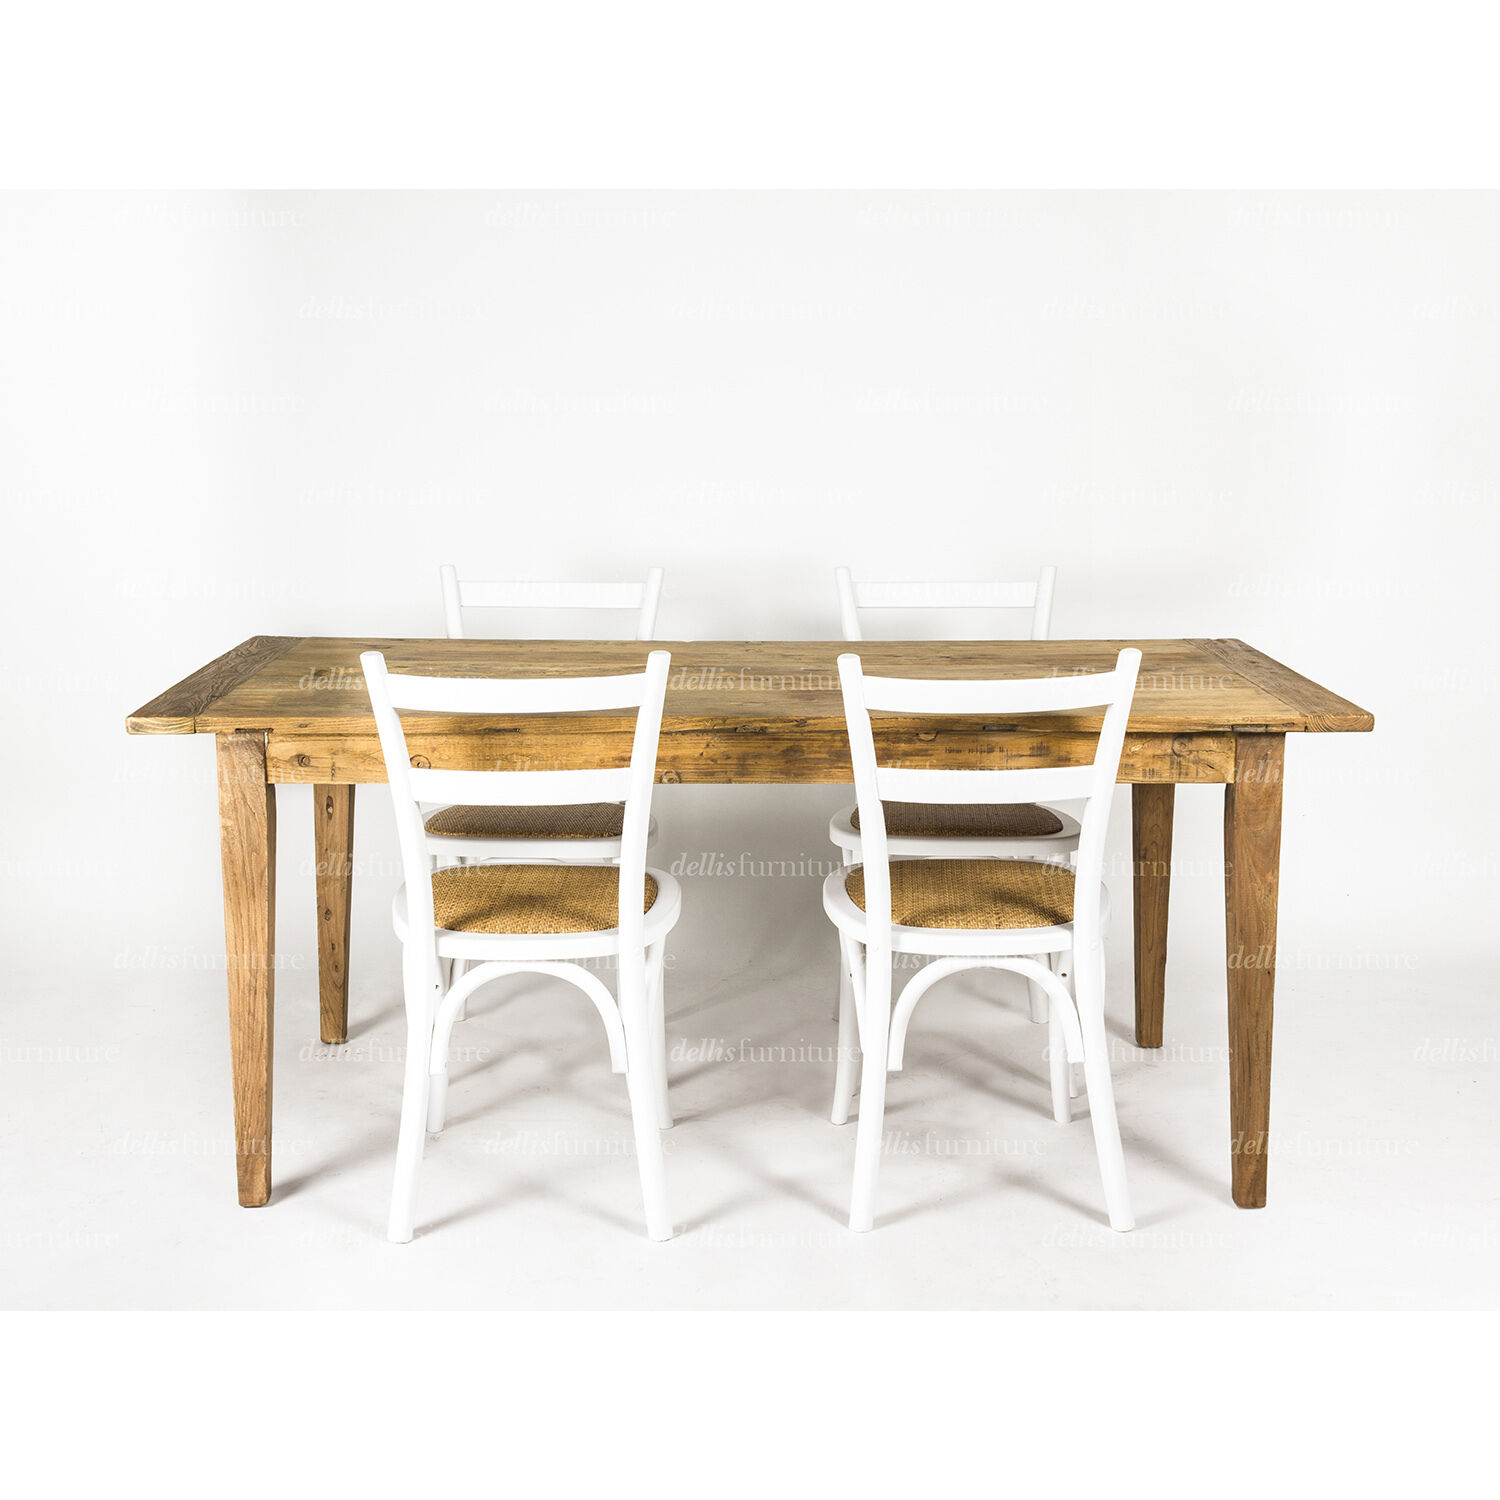 NEW Rustic Provincial Recycled Elm Solid Timber Dining  : s l1600 from www.ebay.com.au size 1500 x 1500 jpeg 146kB